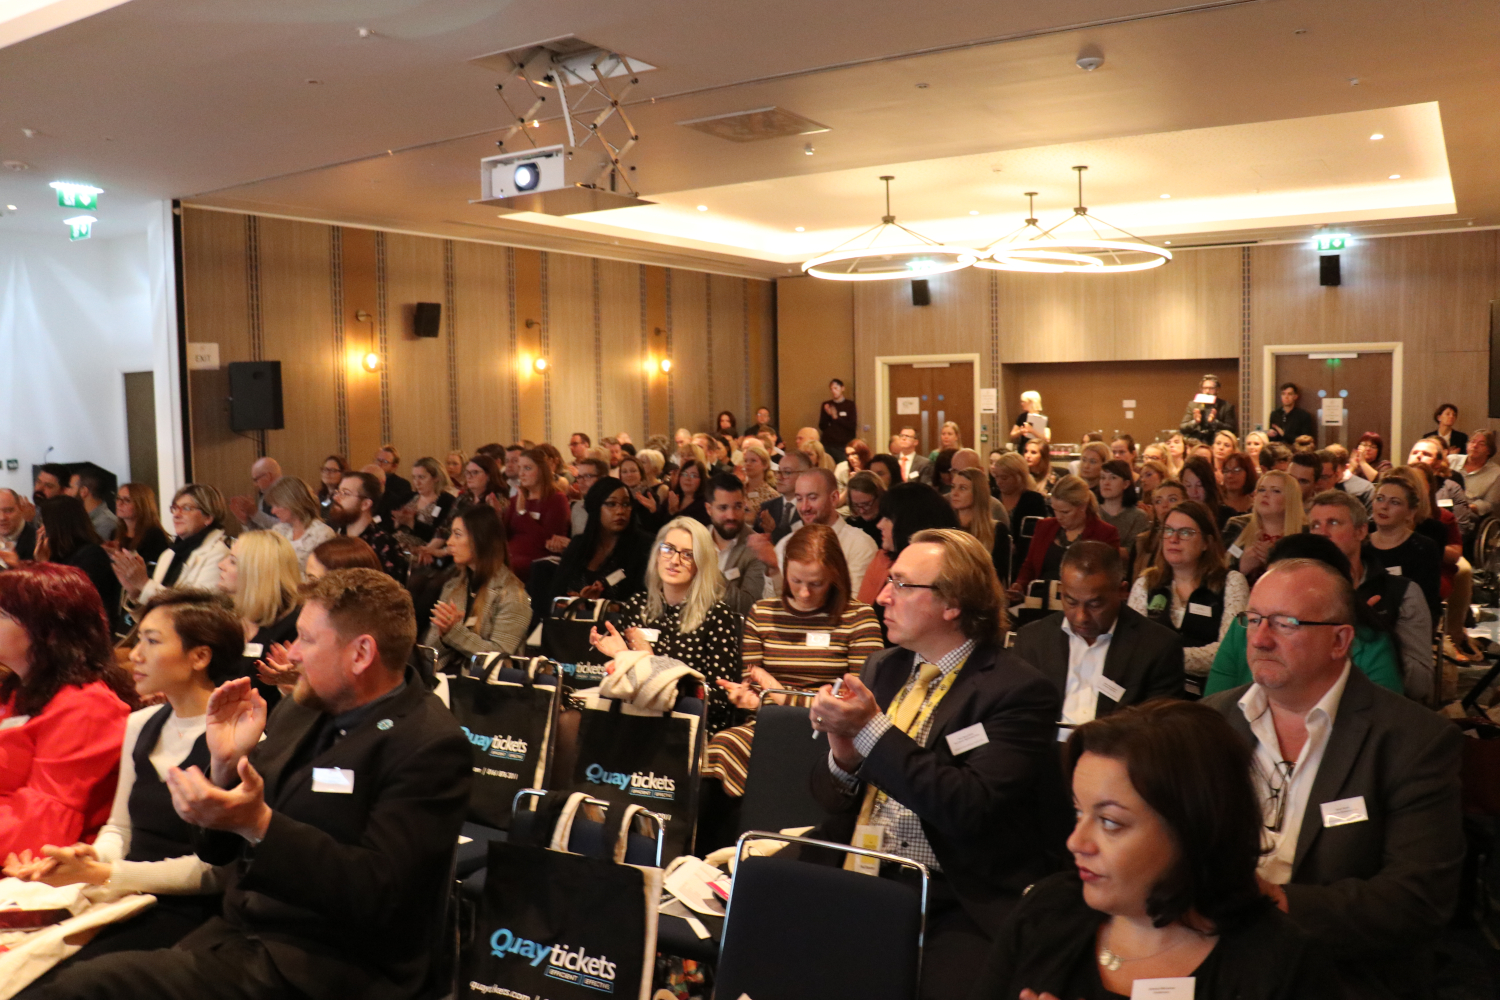 Home - Manchester Tourism Conference